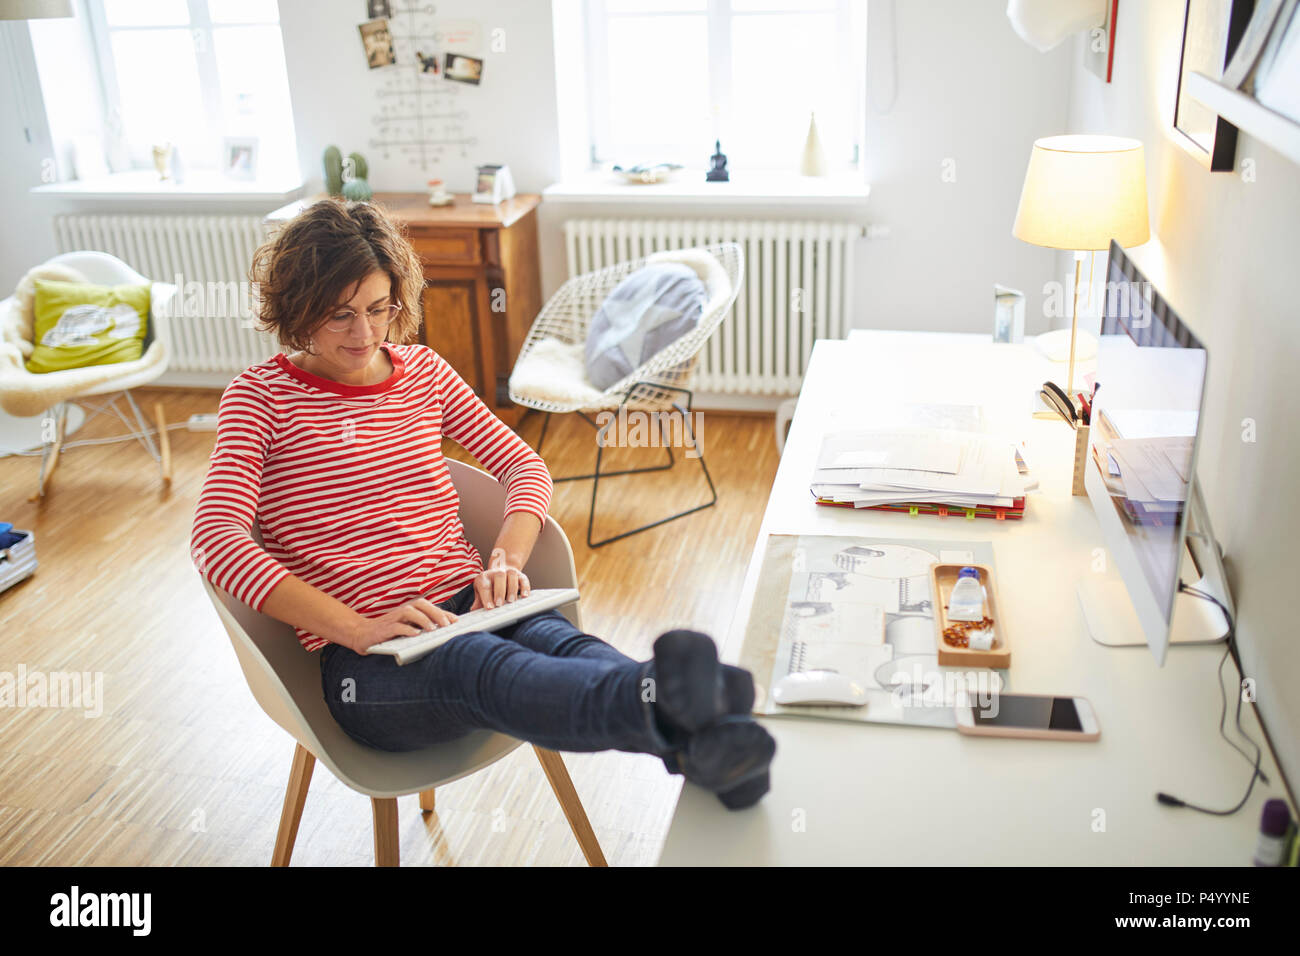 Mature woman sitting with feet up at desk at home using cordless keyboard - Stock Image